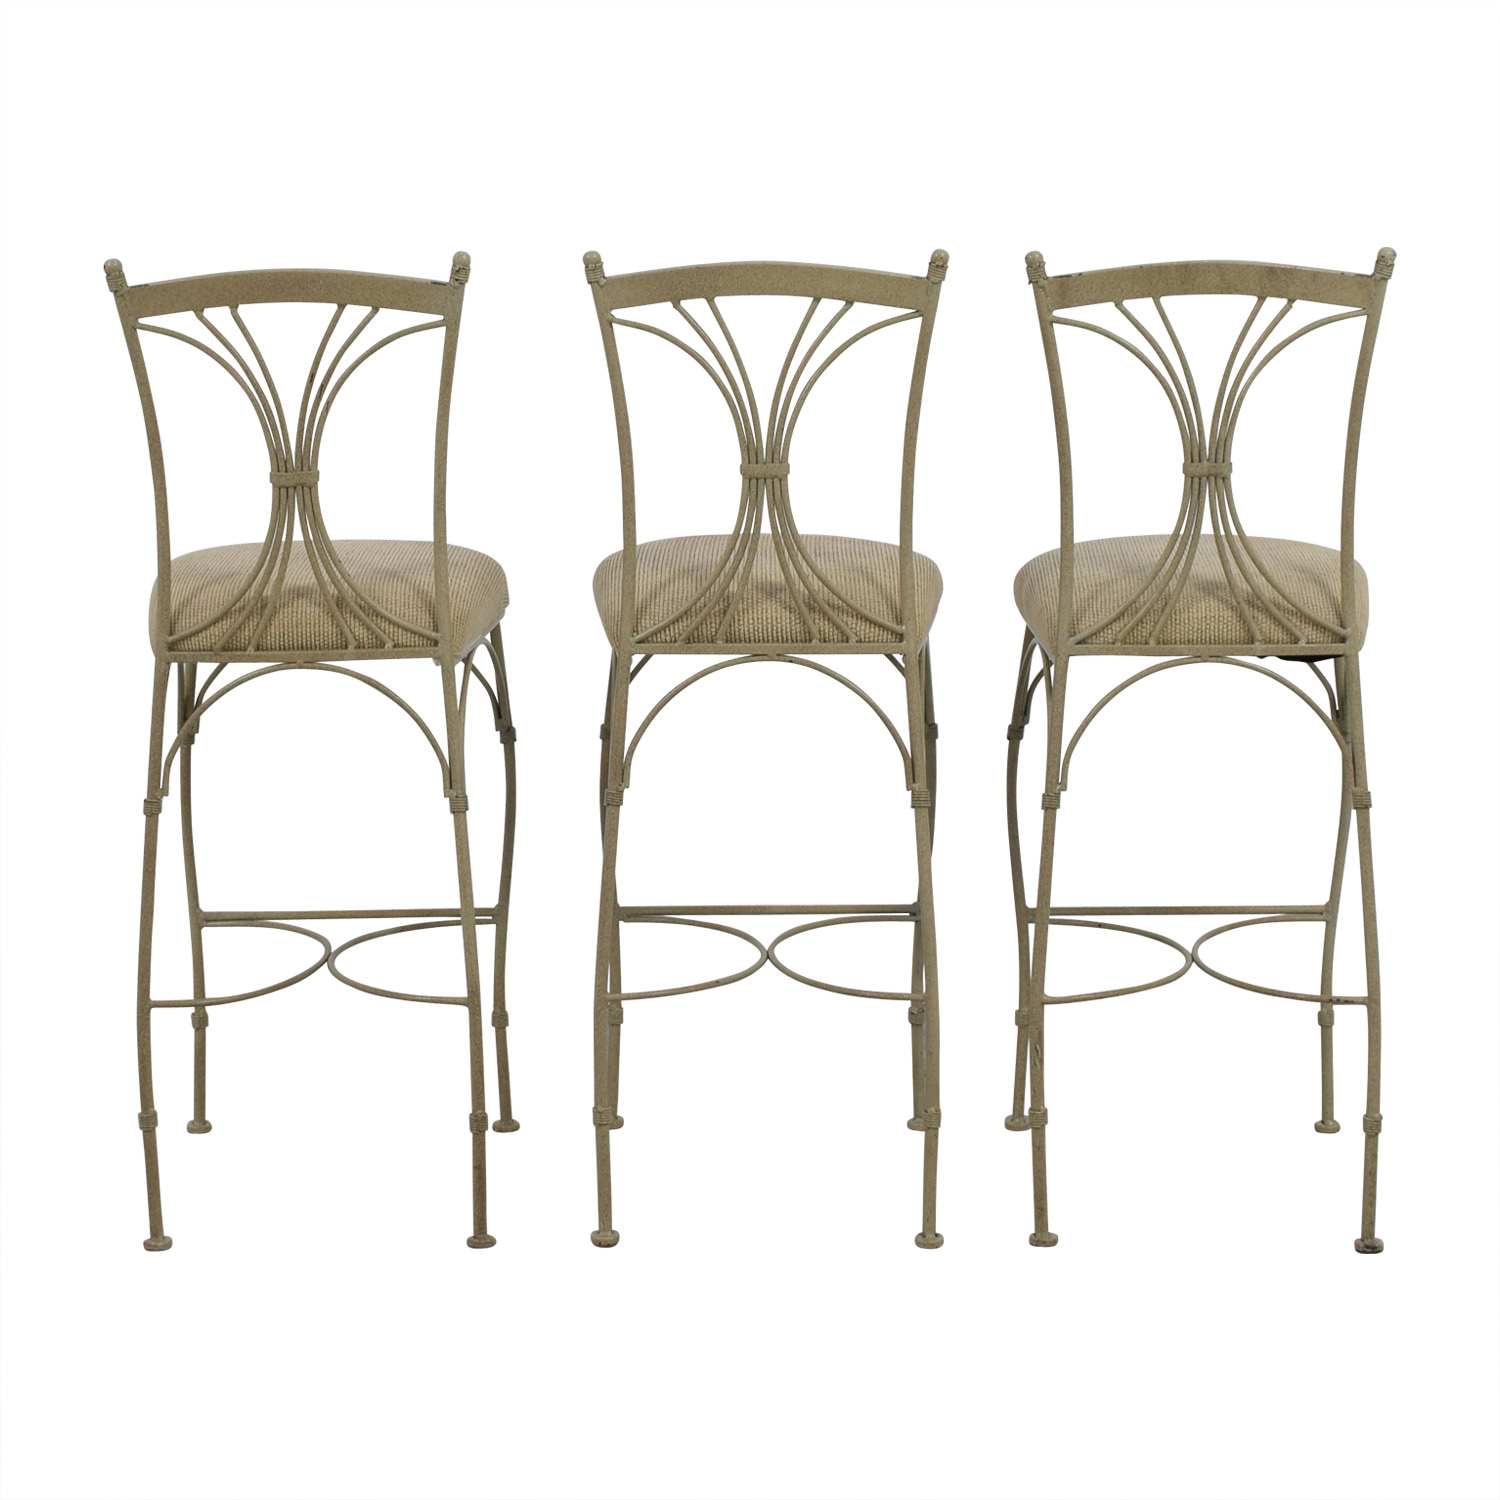 shop HomeGoods Tan & Metal Bar Stools HomeGoods Chairs